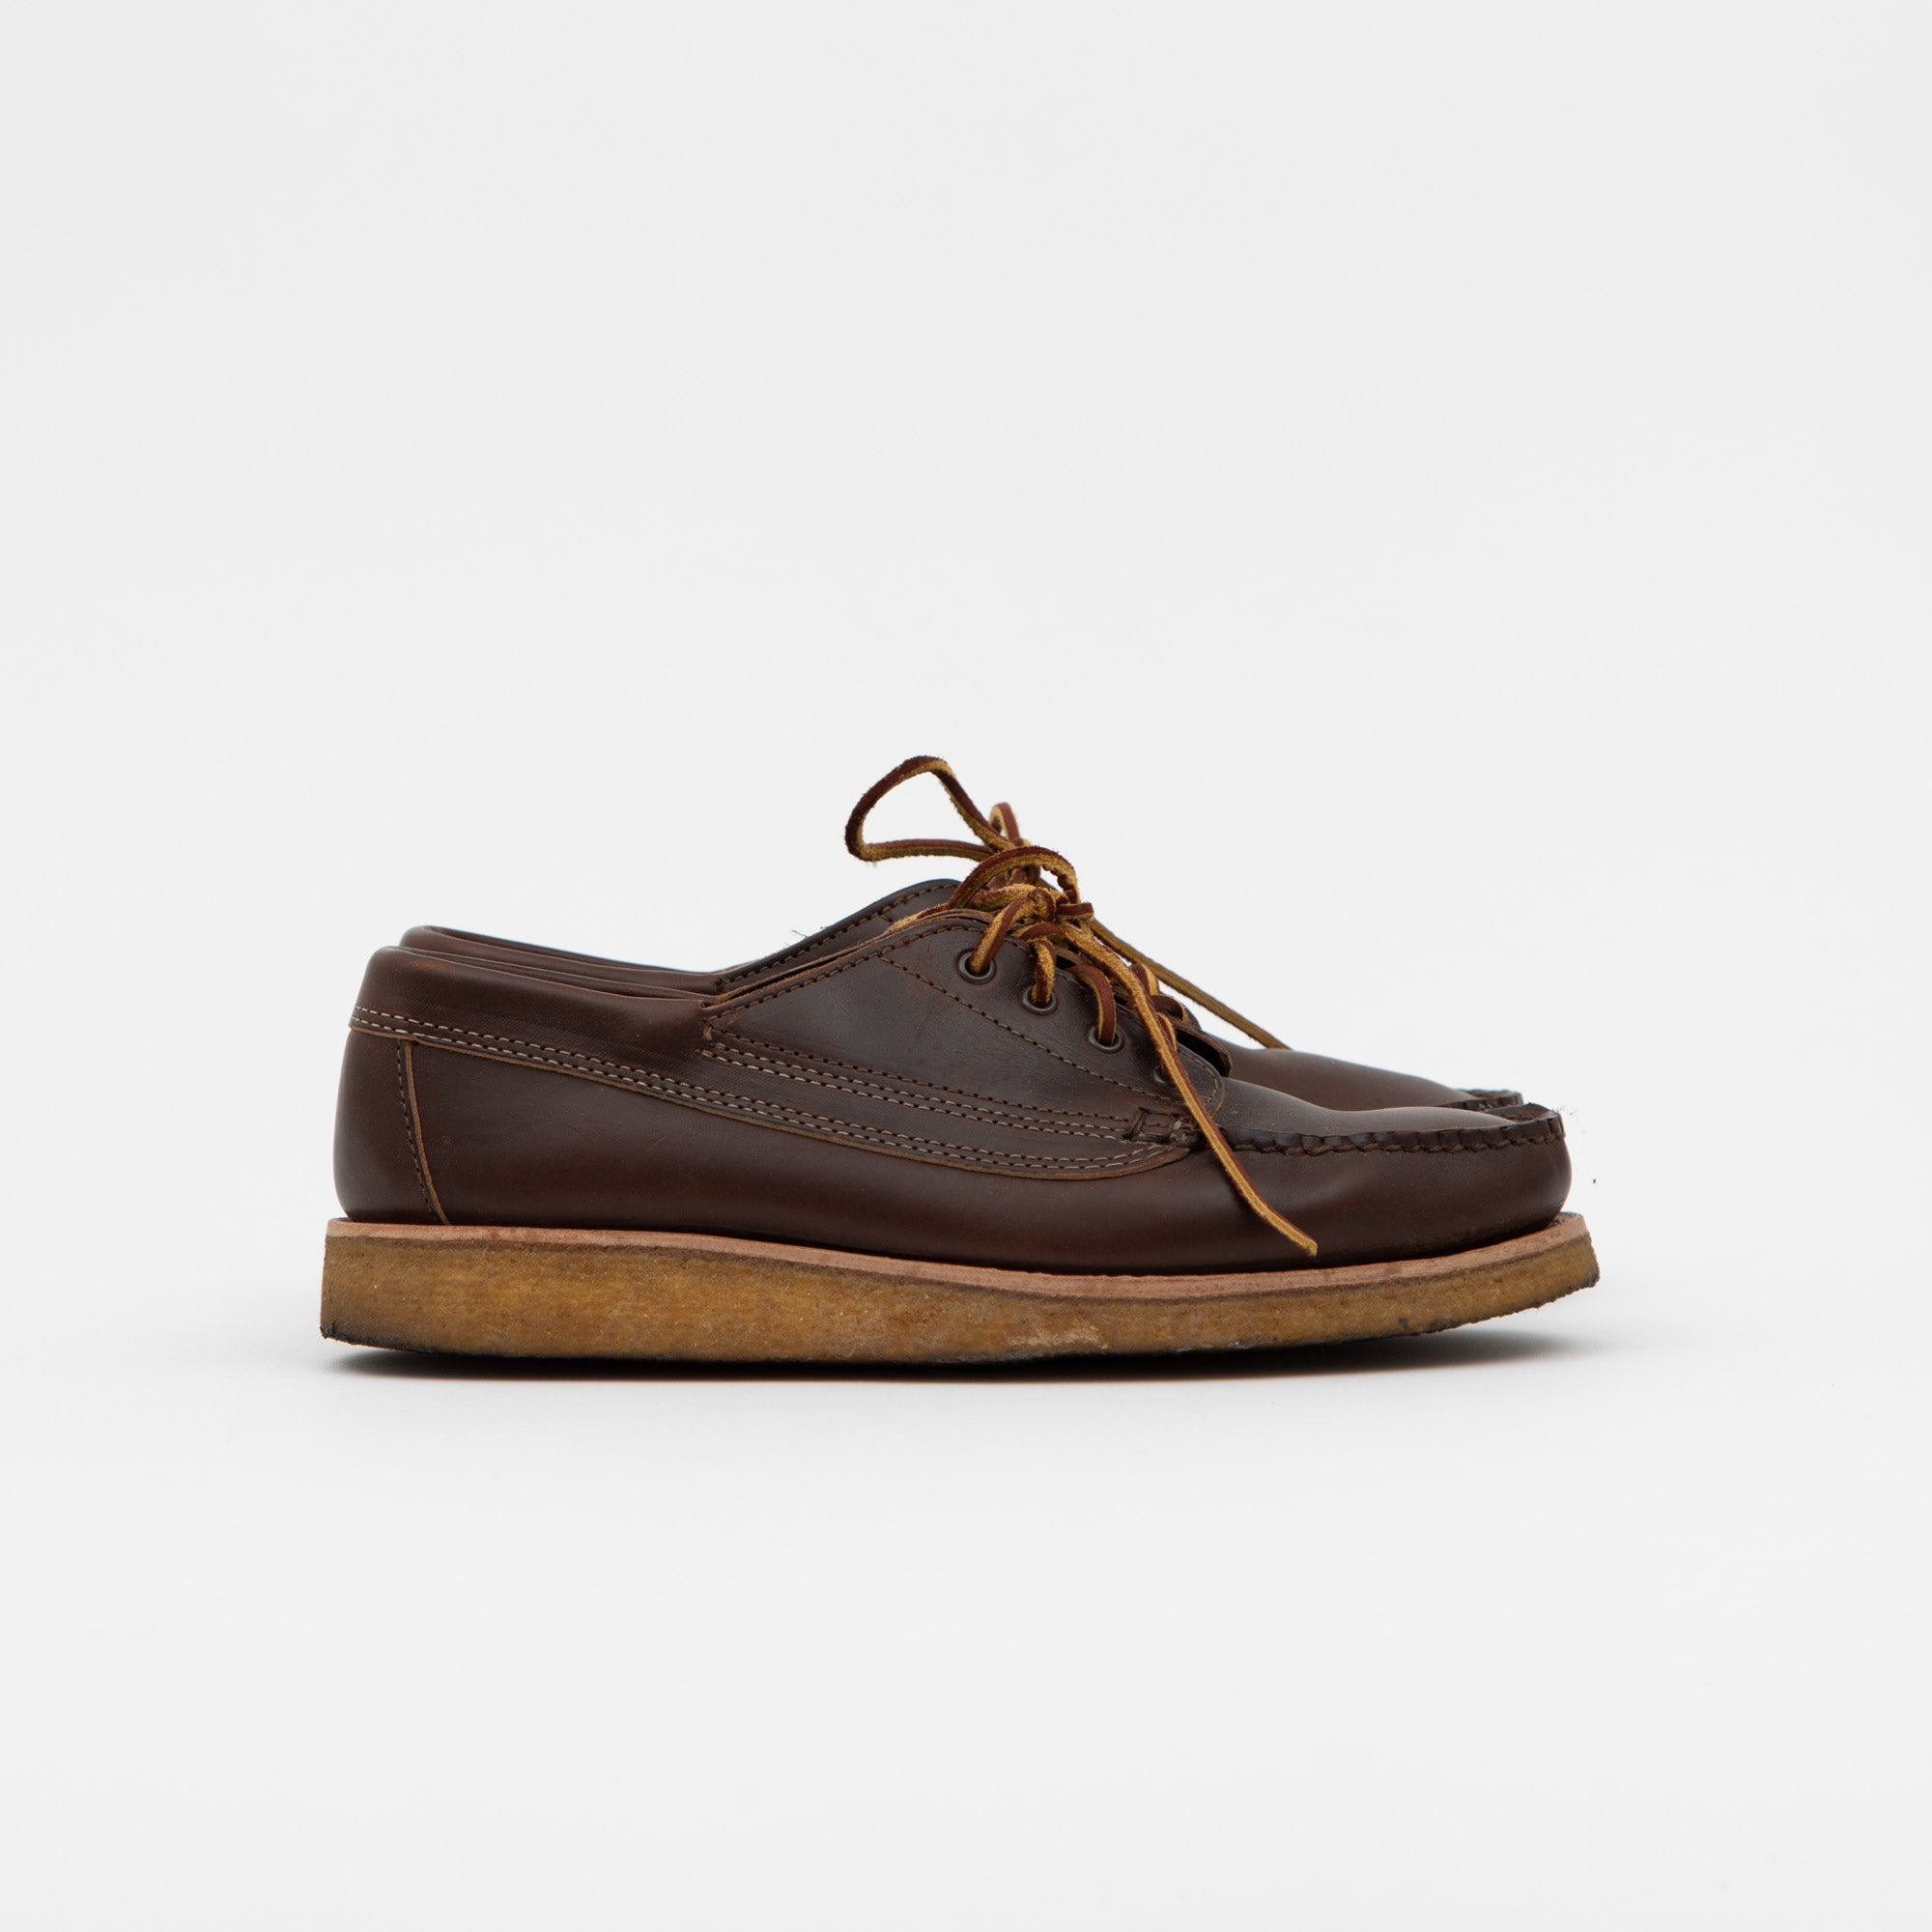 Yuketen Handsewn Maine Guide Shoe